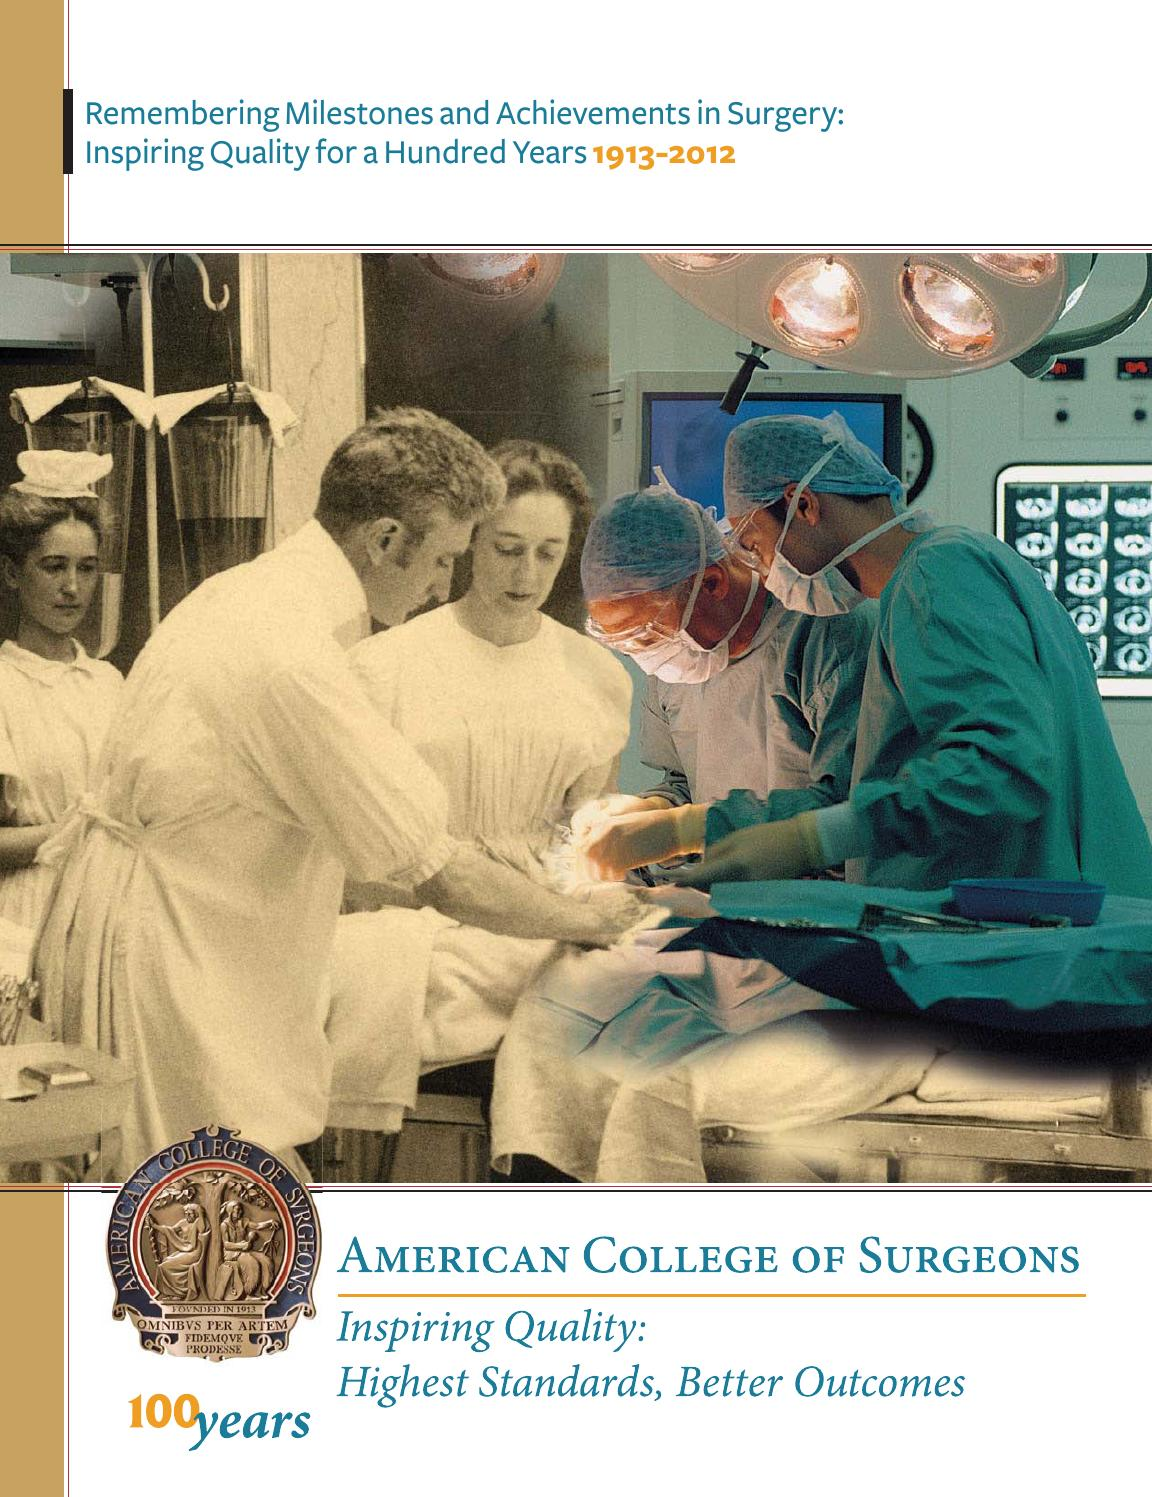 American College of Surgeons: Remembering Milestones and